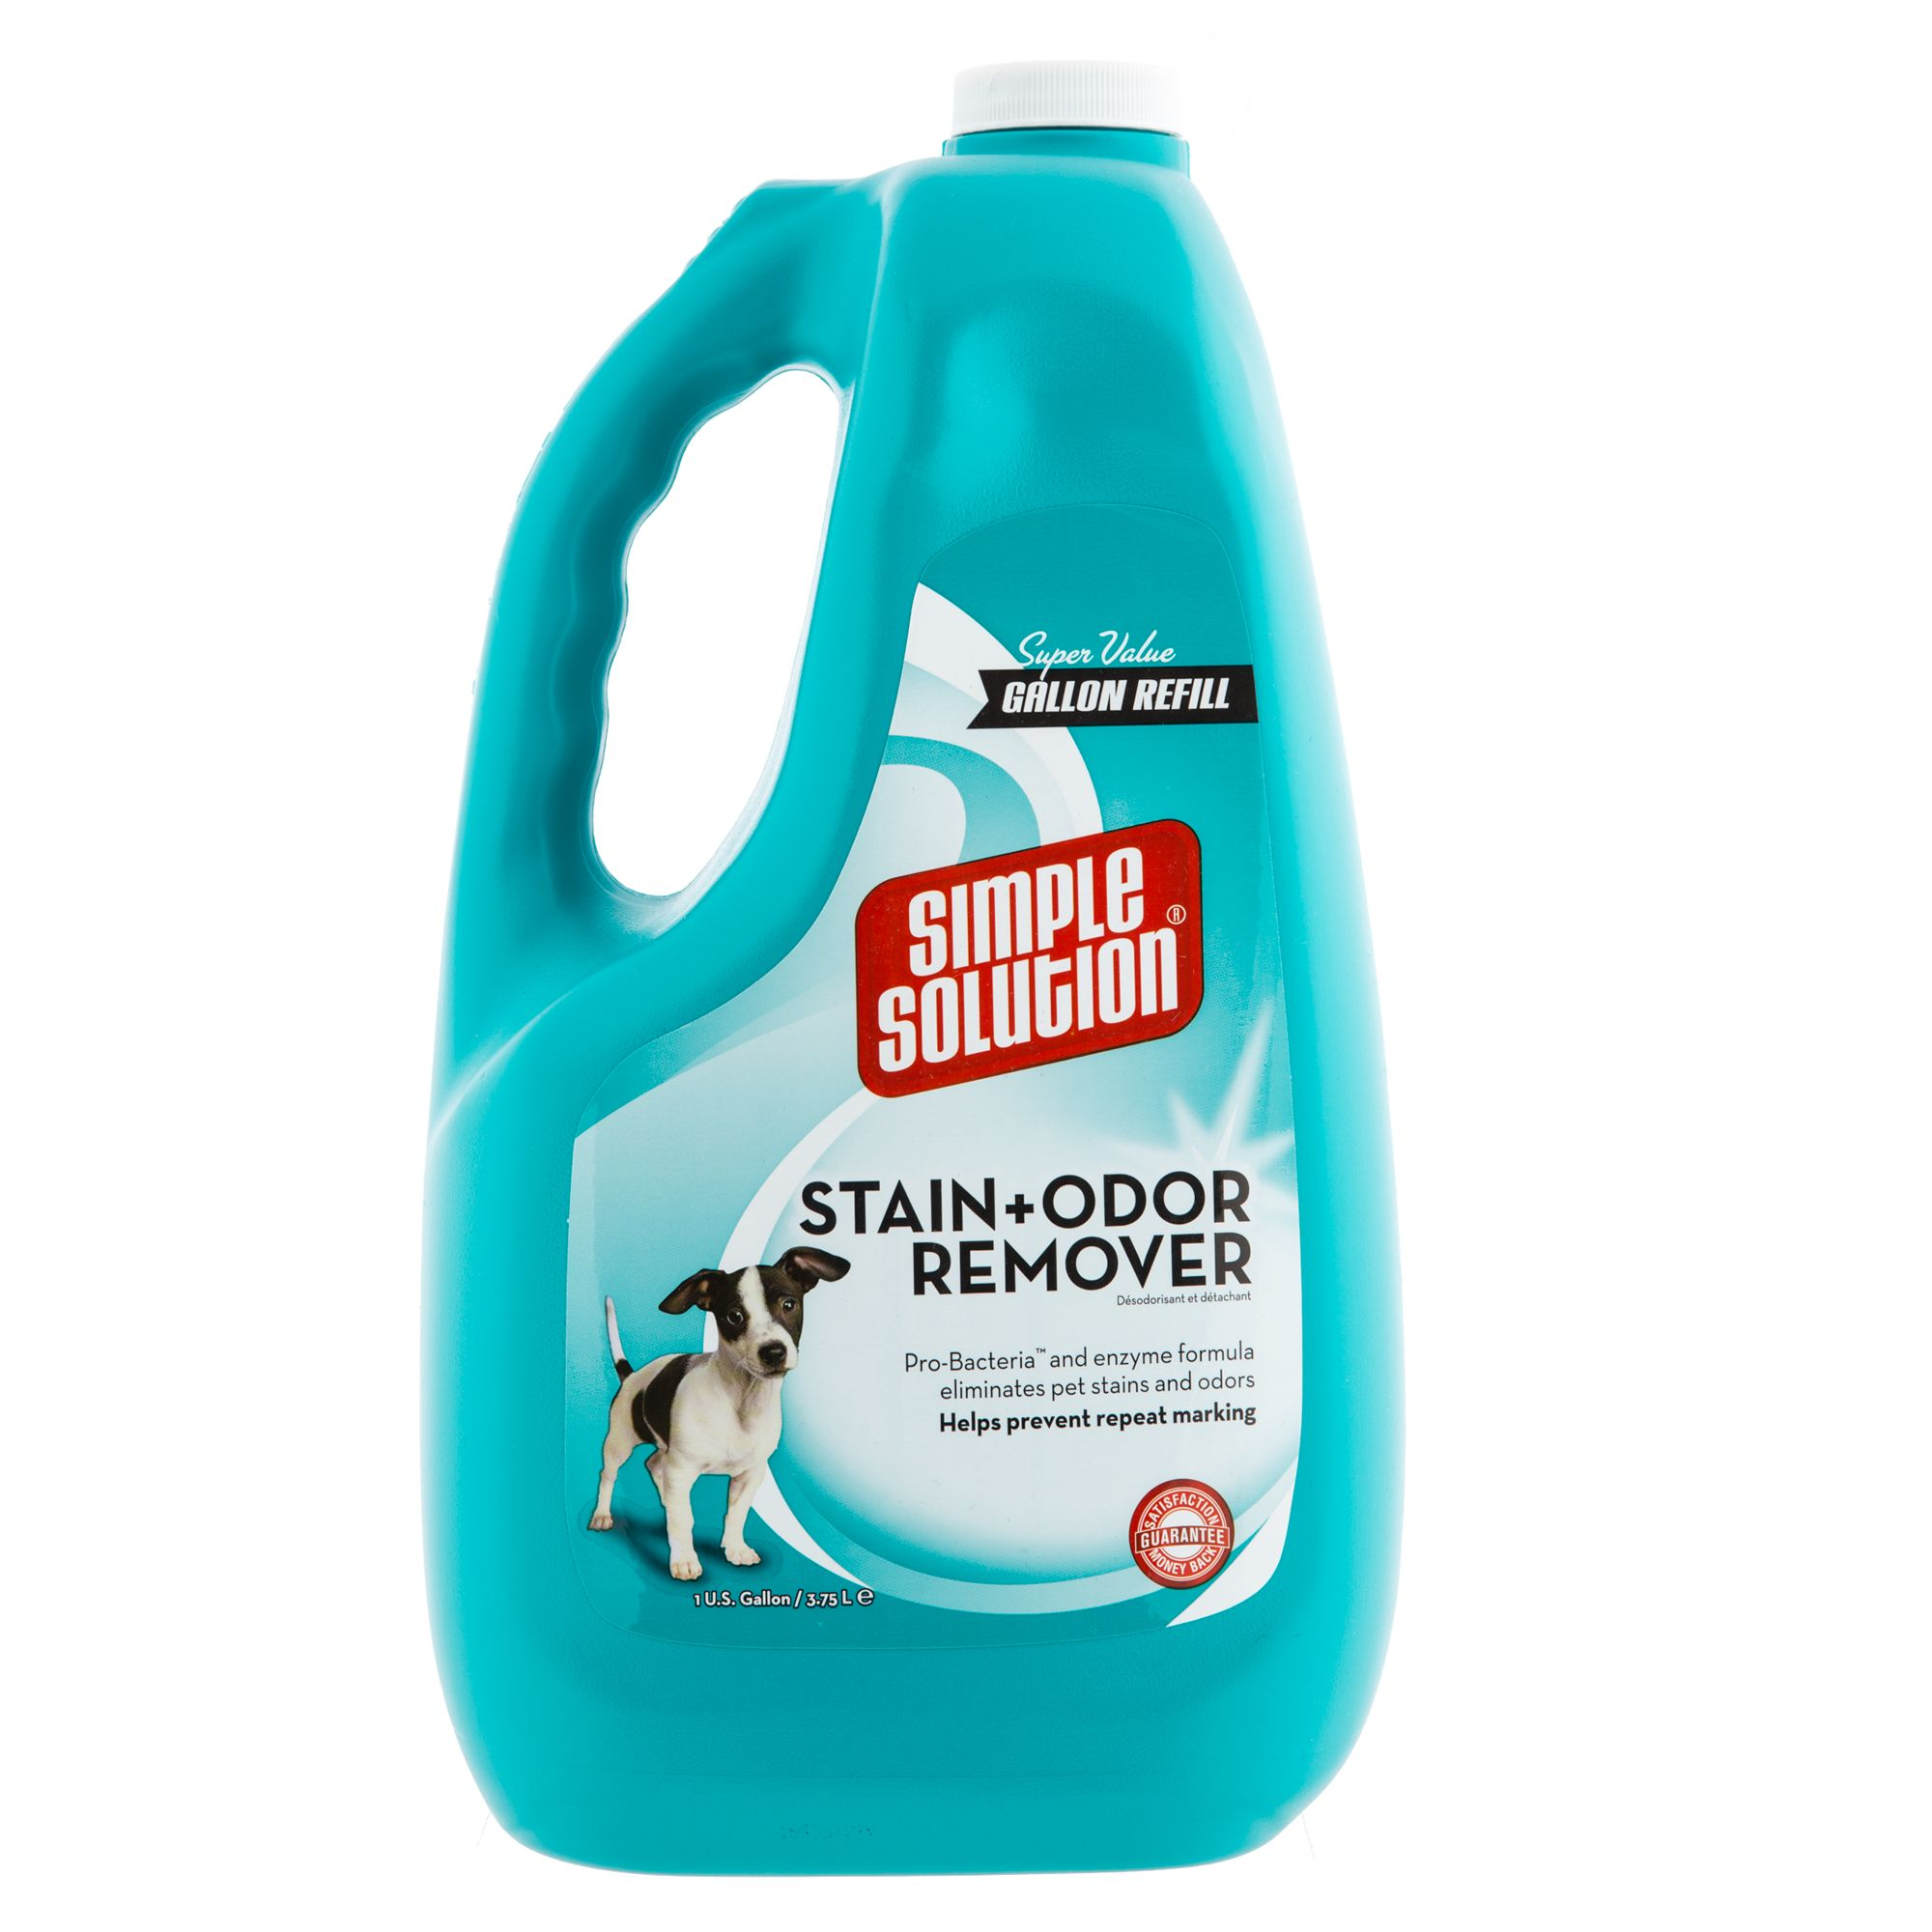 Simple Solution Stain and Odor Remover size: 1 Gal 5251064